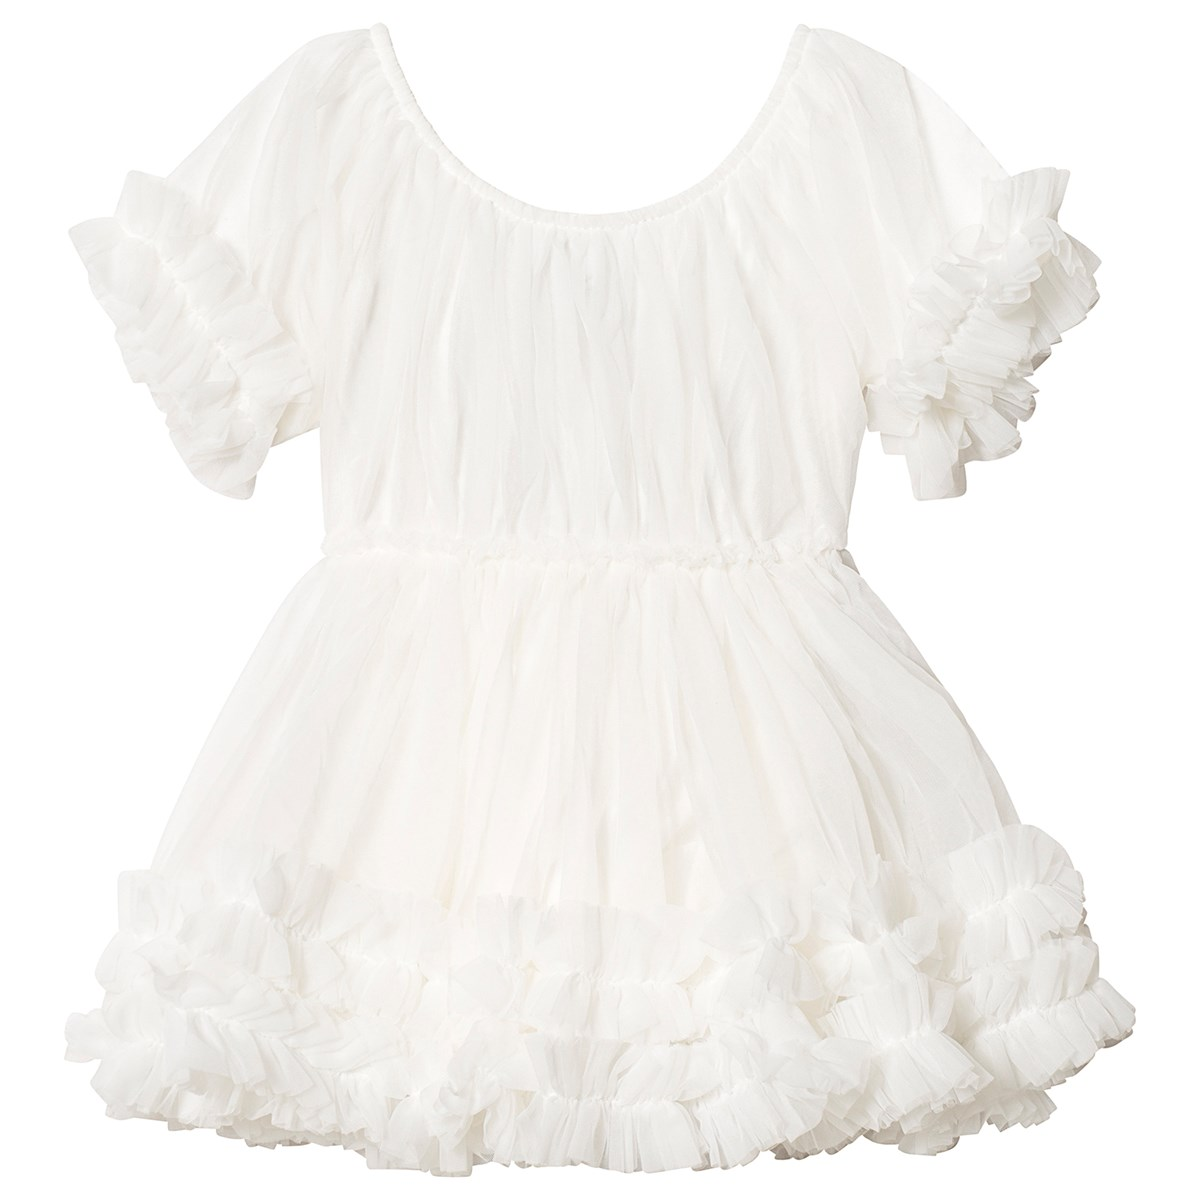 d04d51cee0 DOLLY by Le Petit Tom - Frilly Dress Off White - Babyshop.com